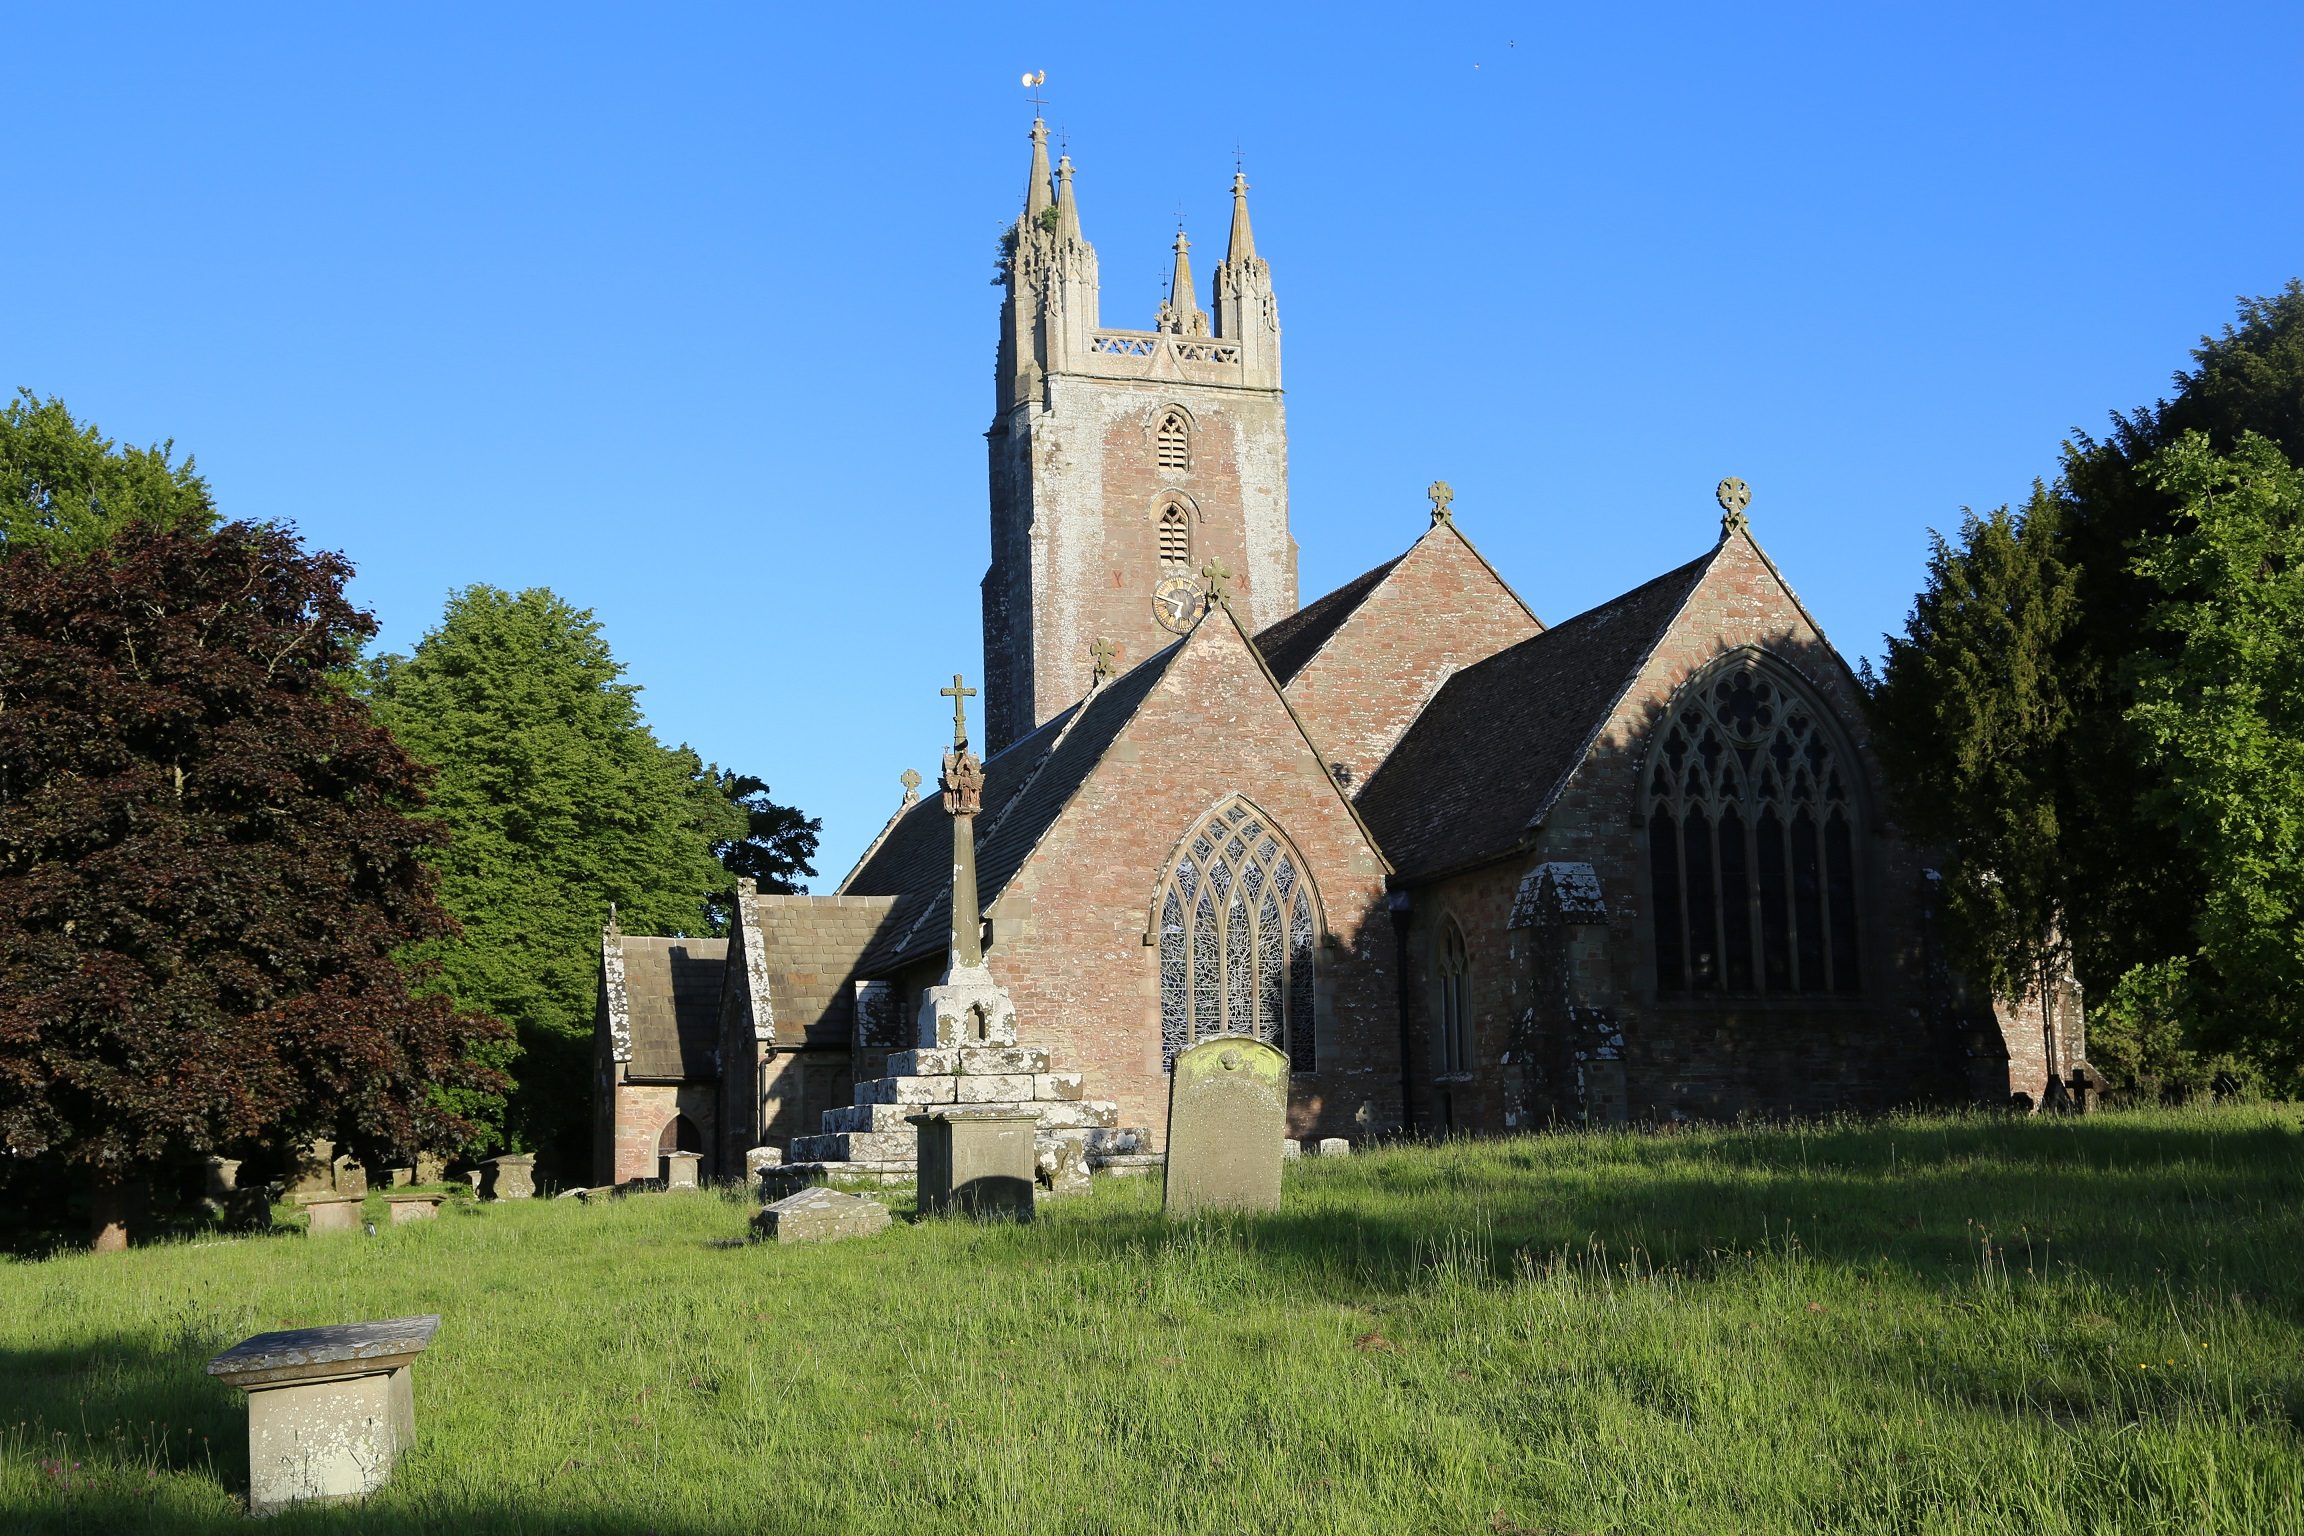 All Saints Church in Newland, home to the tomb of Sir John Greyndour